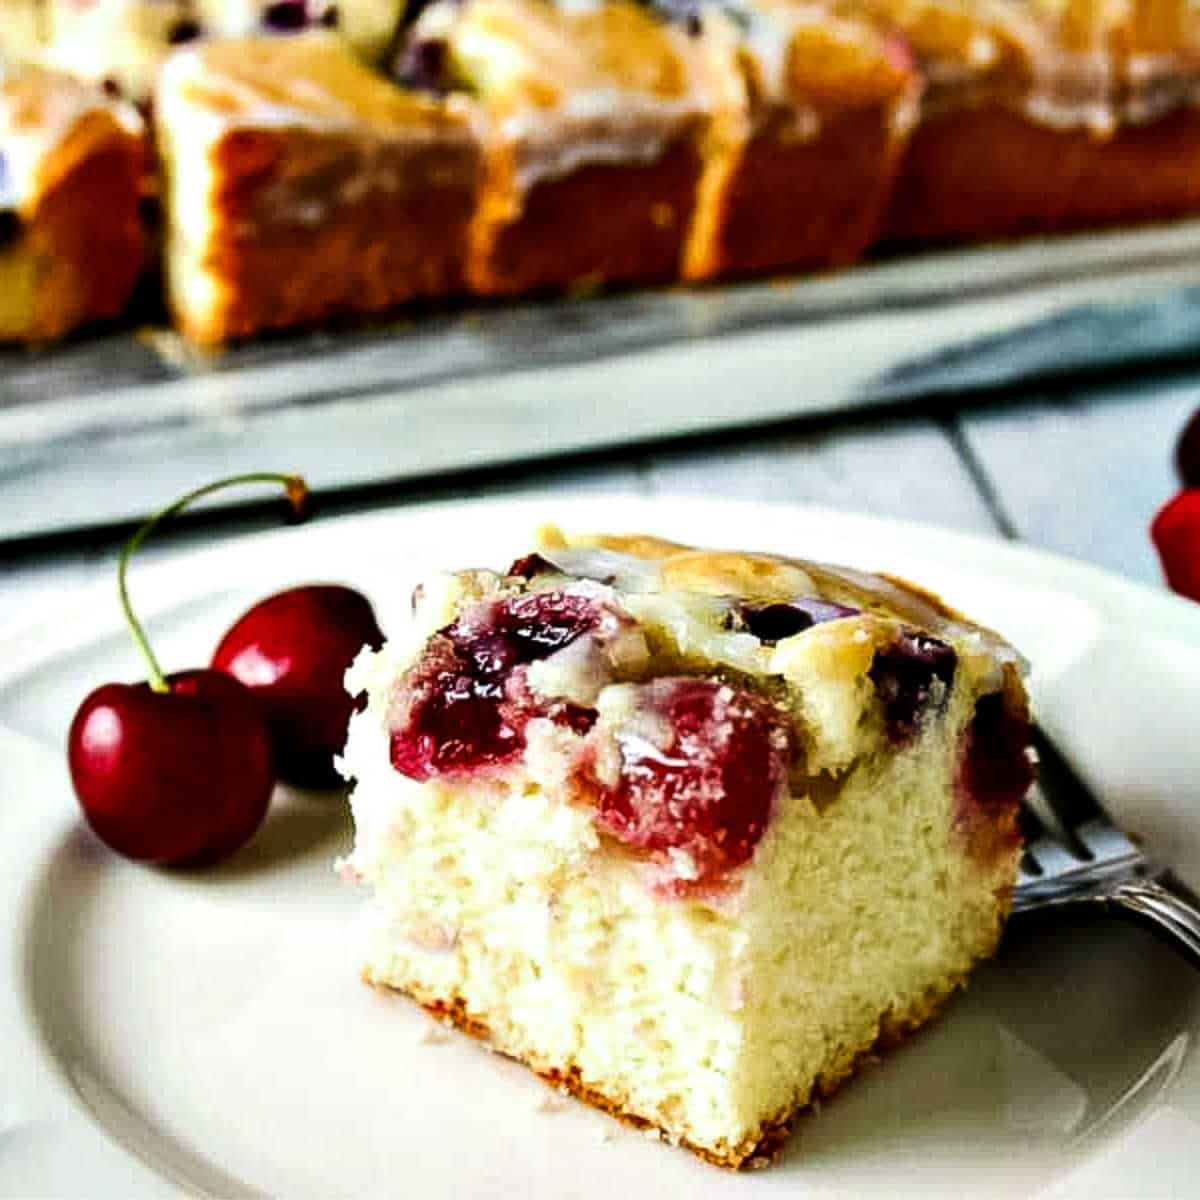 a piece of cherry cake on a white plate